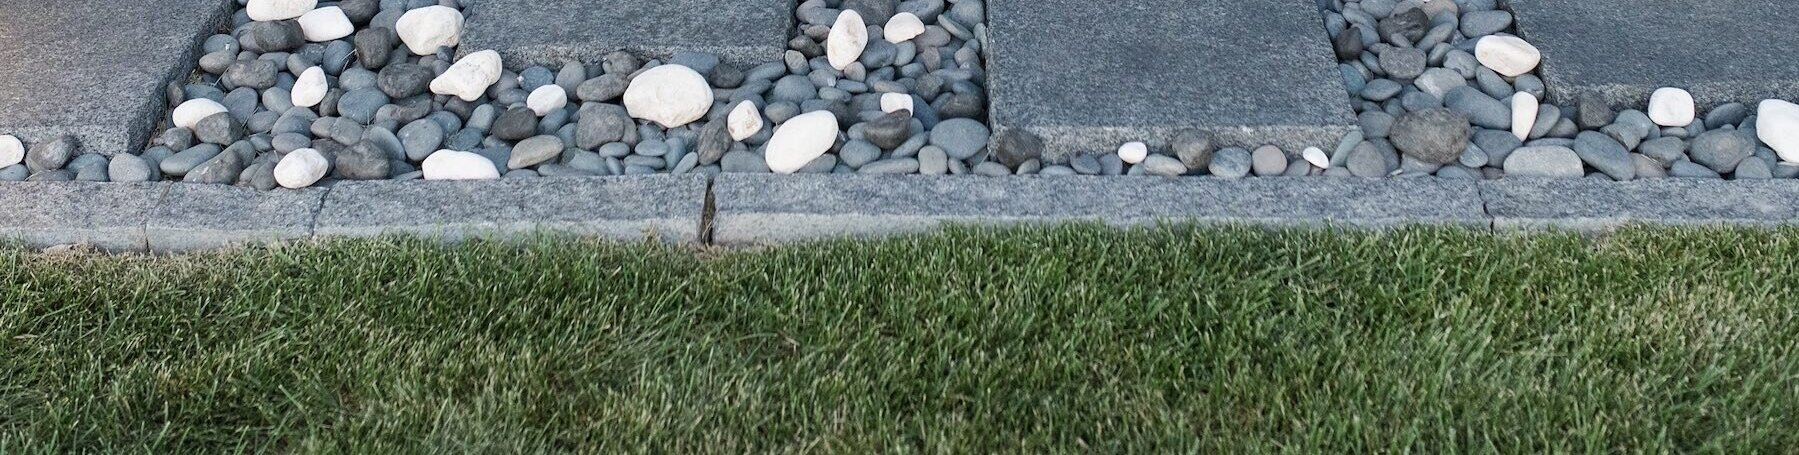 lawn-care-grass-waukee-iowa